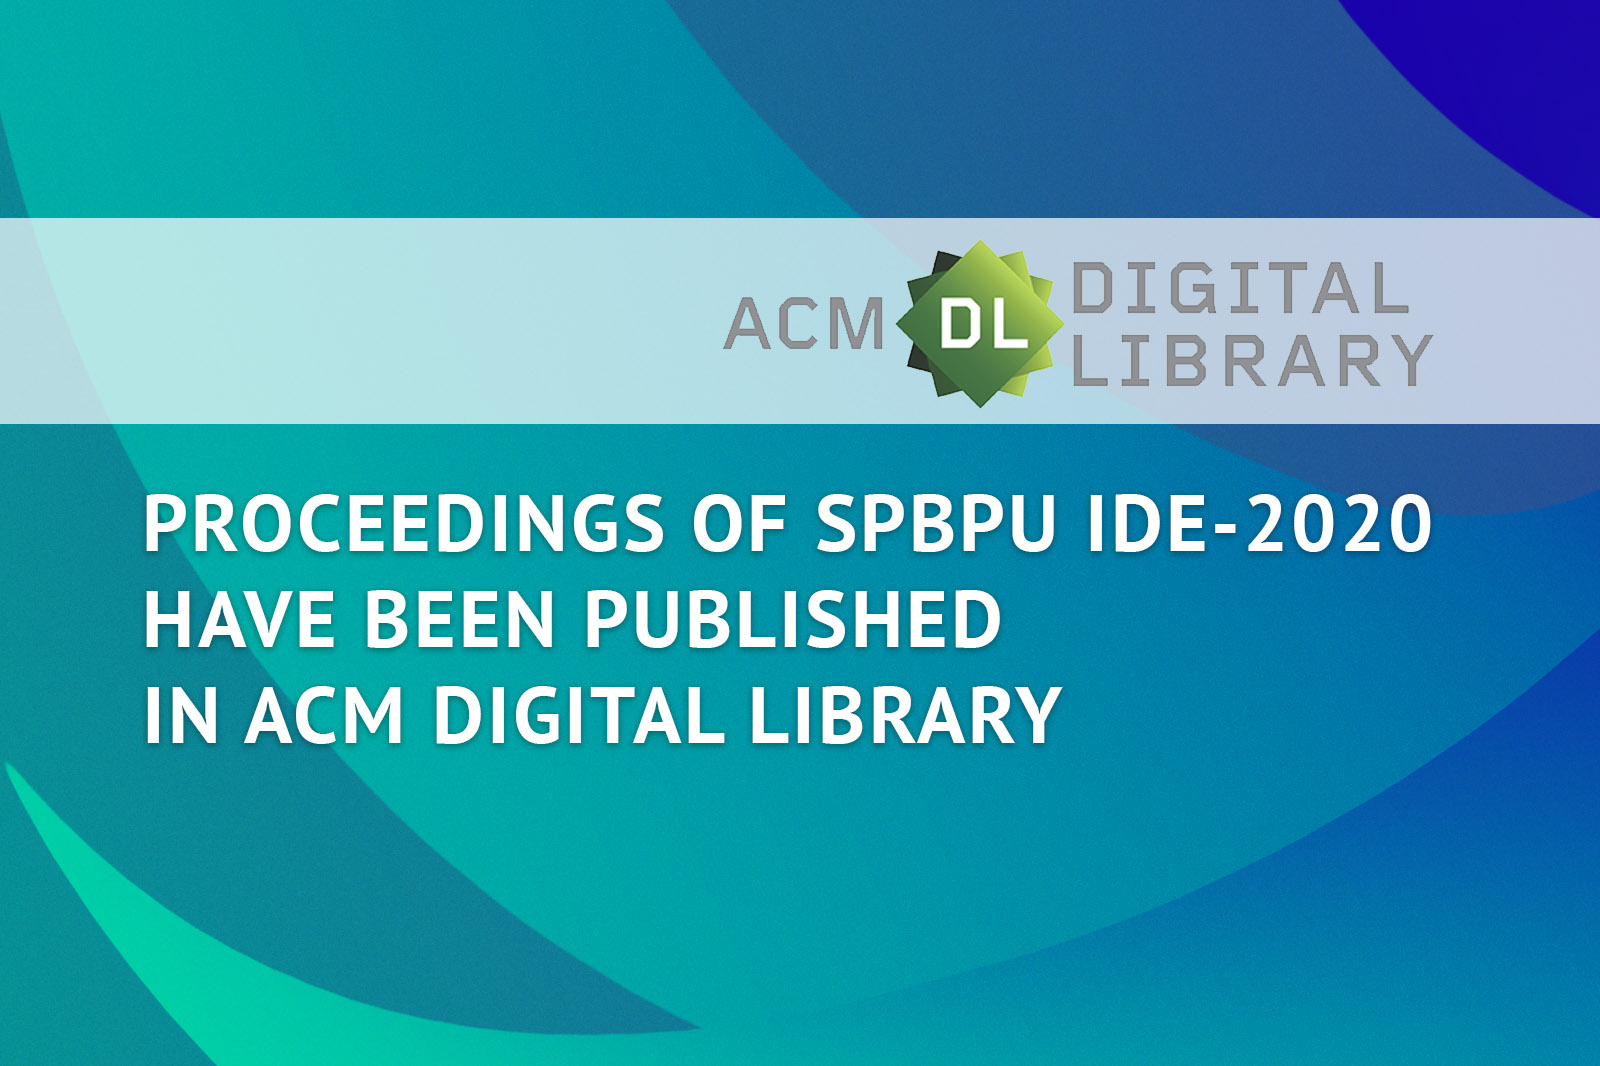 Proceedings of SPBPU IDE-2020 have been published in ACM digital library